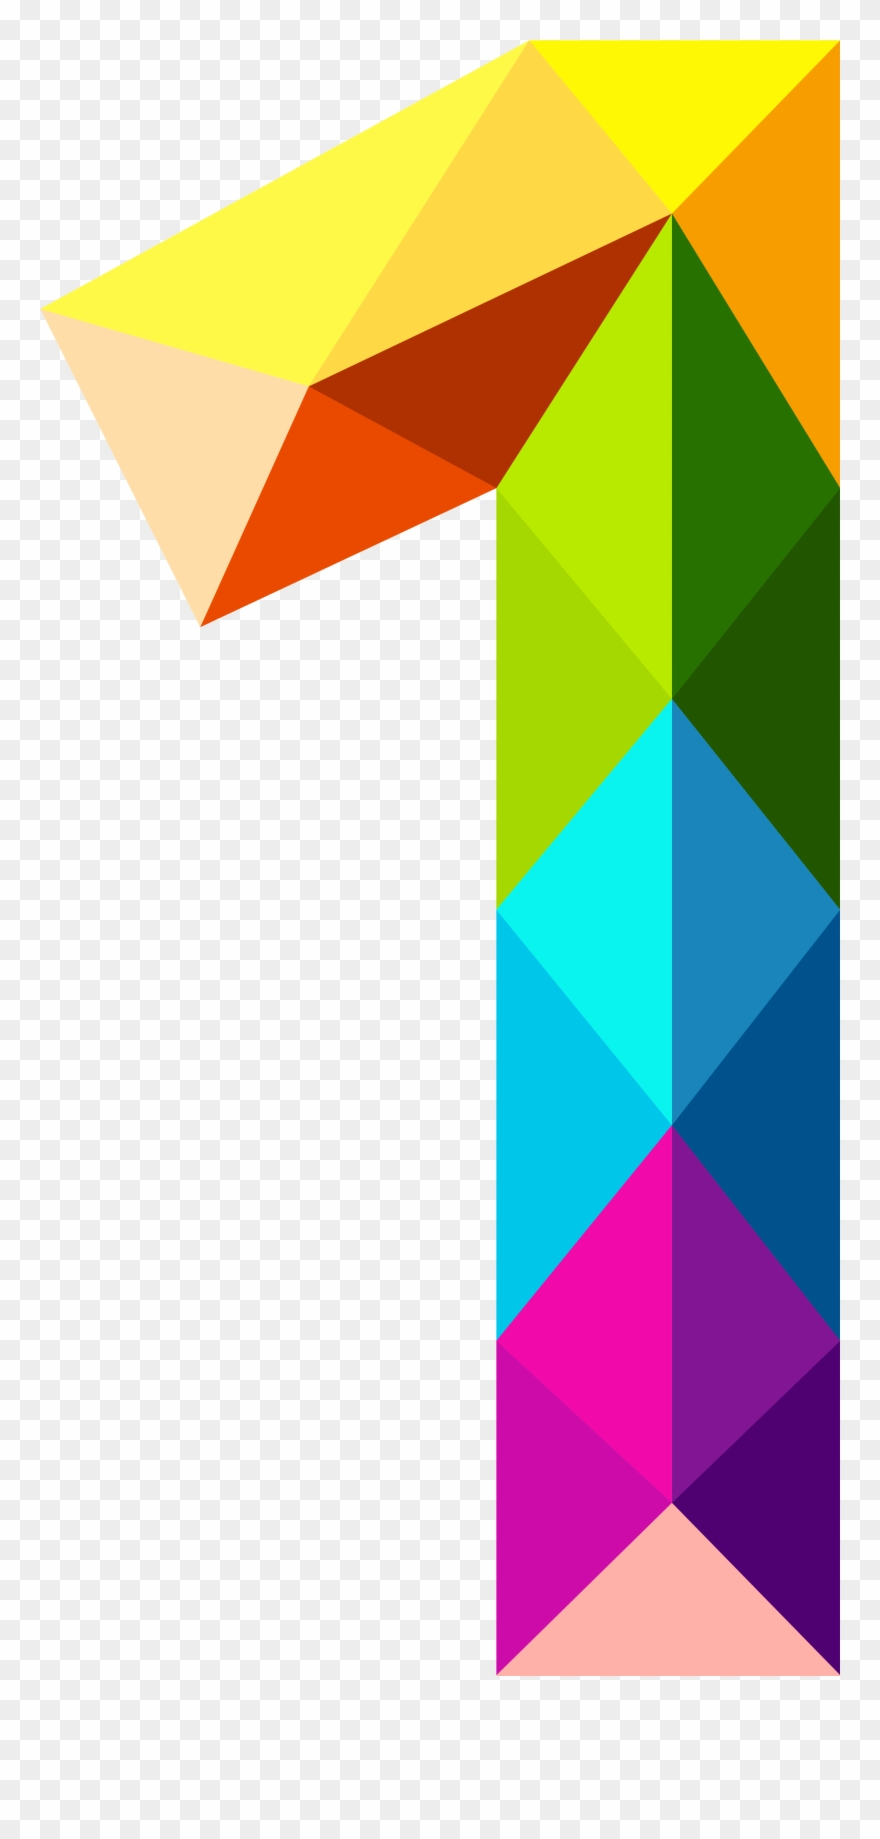 7 clipart colourful. Triangles number one png